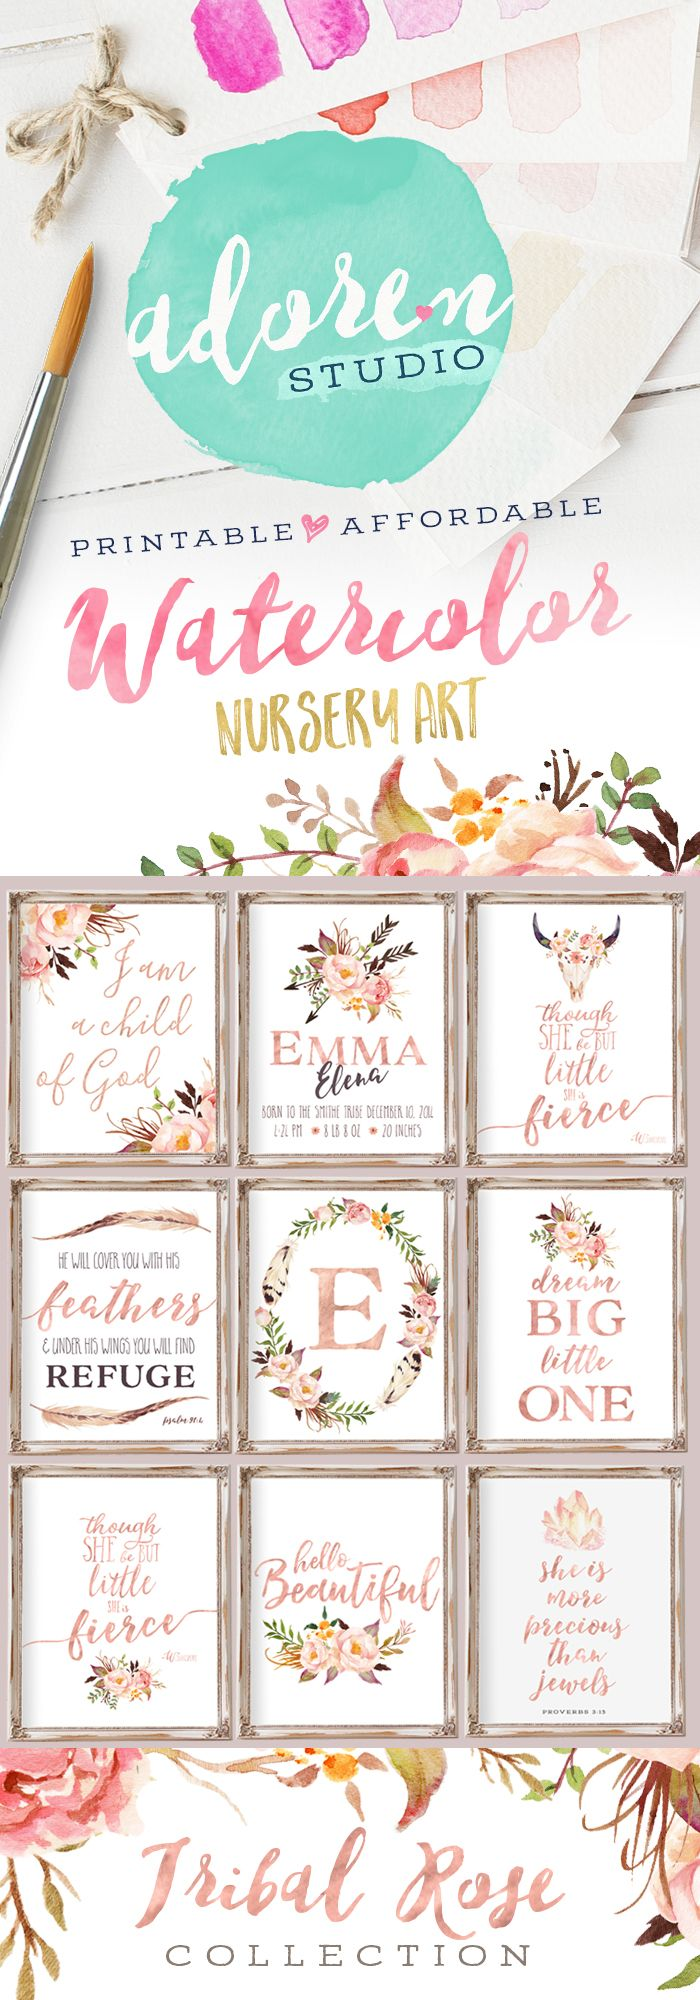 For a girl. Introducing the Tribal Rose Collection from Adoren Studio on Etsy Tribal Nursery Decor, Nursery Wall Art, Nursery Decor, Nursery Printables, Floral Nursery, Watercolor Nursery Art, Rose Gold Nursery, Baby Girl Nursery Quote Print